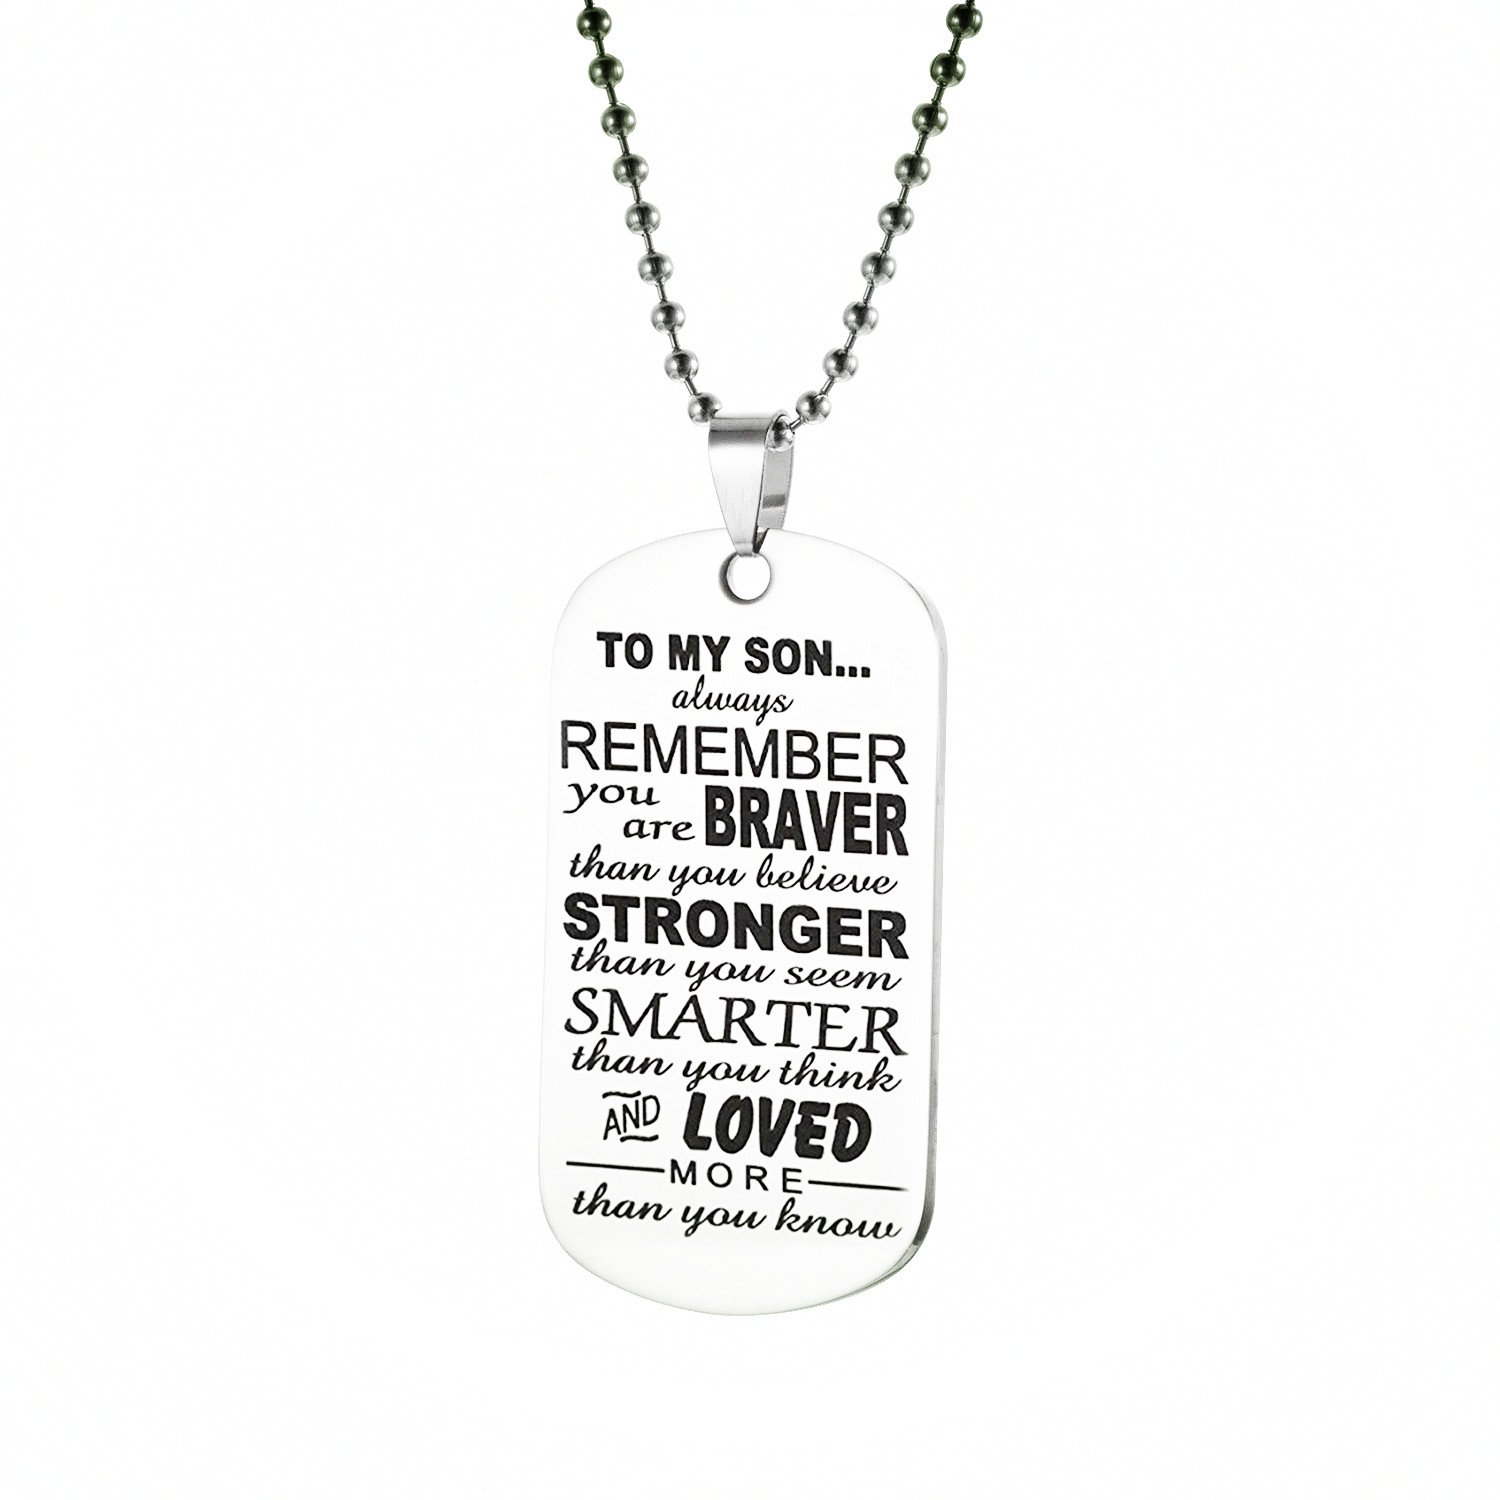 Heng Yi Always Remember You are Braver Than You Believe Necklace JN0001-1/HYCA